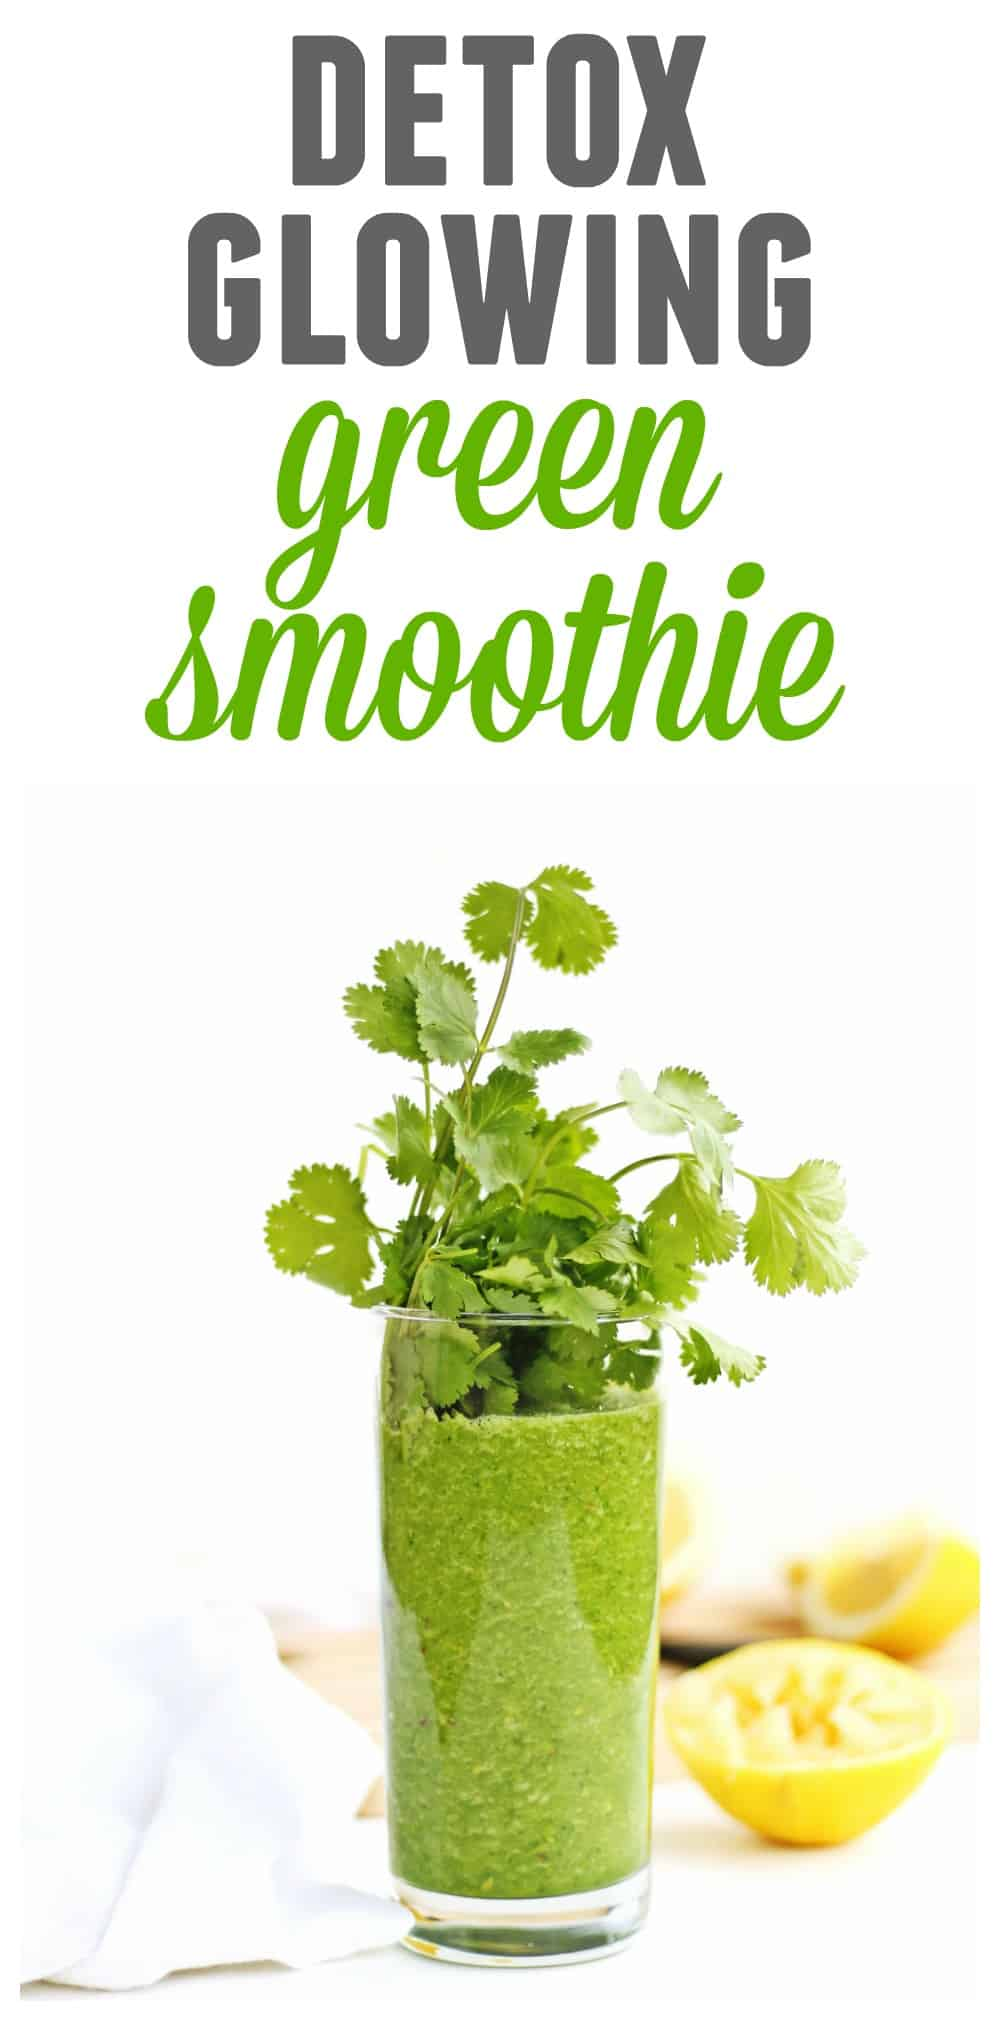 Glowing green smoothie pinterest